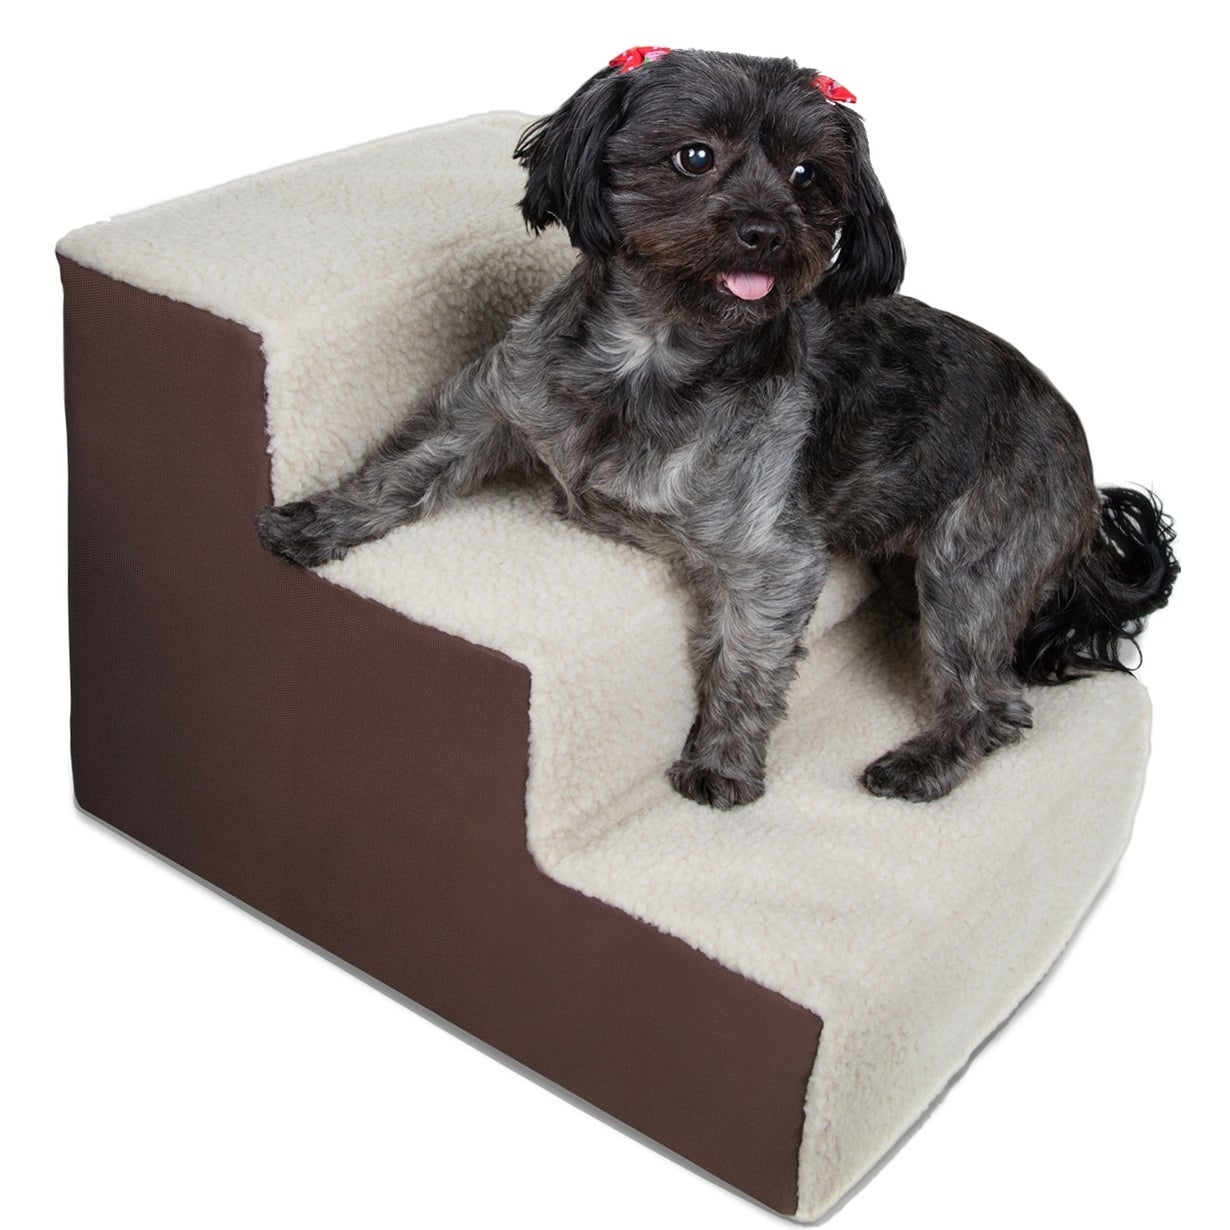 Paws & Pals Dog/Cat Stairs 3-step for Home or Travel - Up...